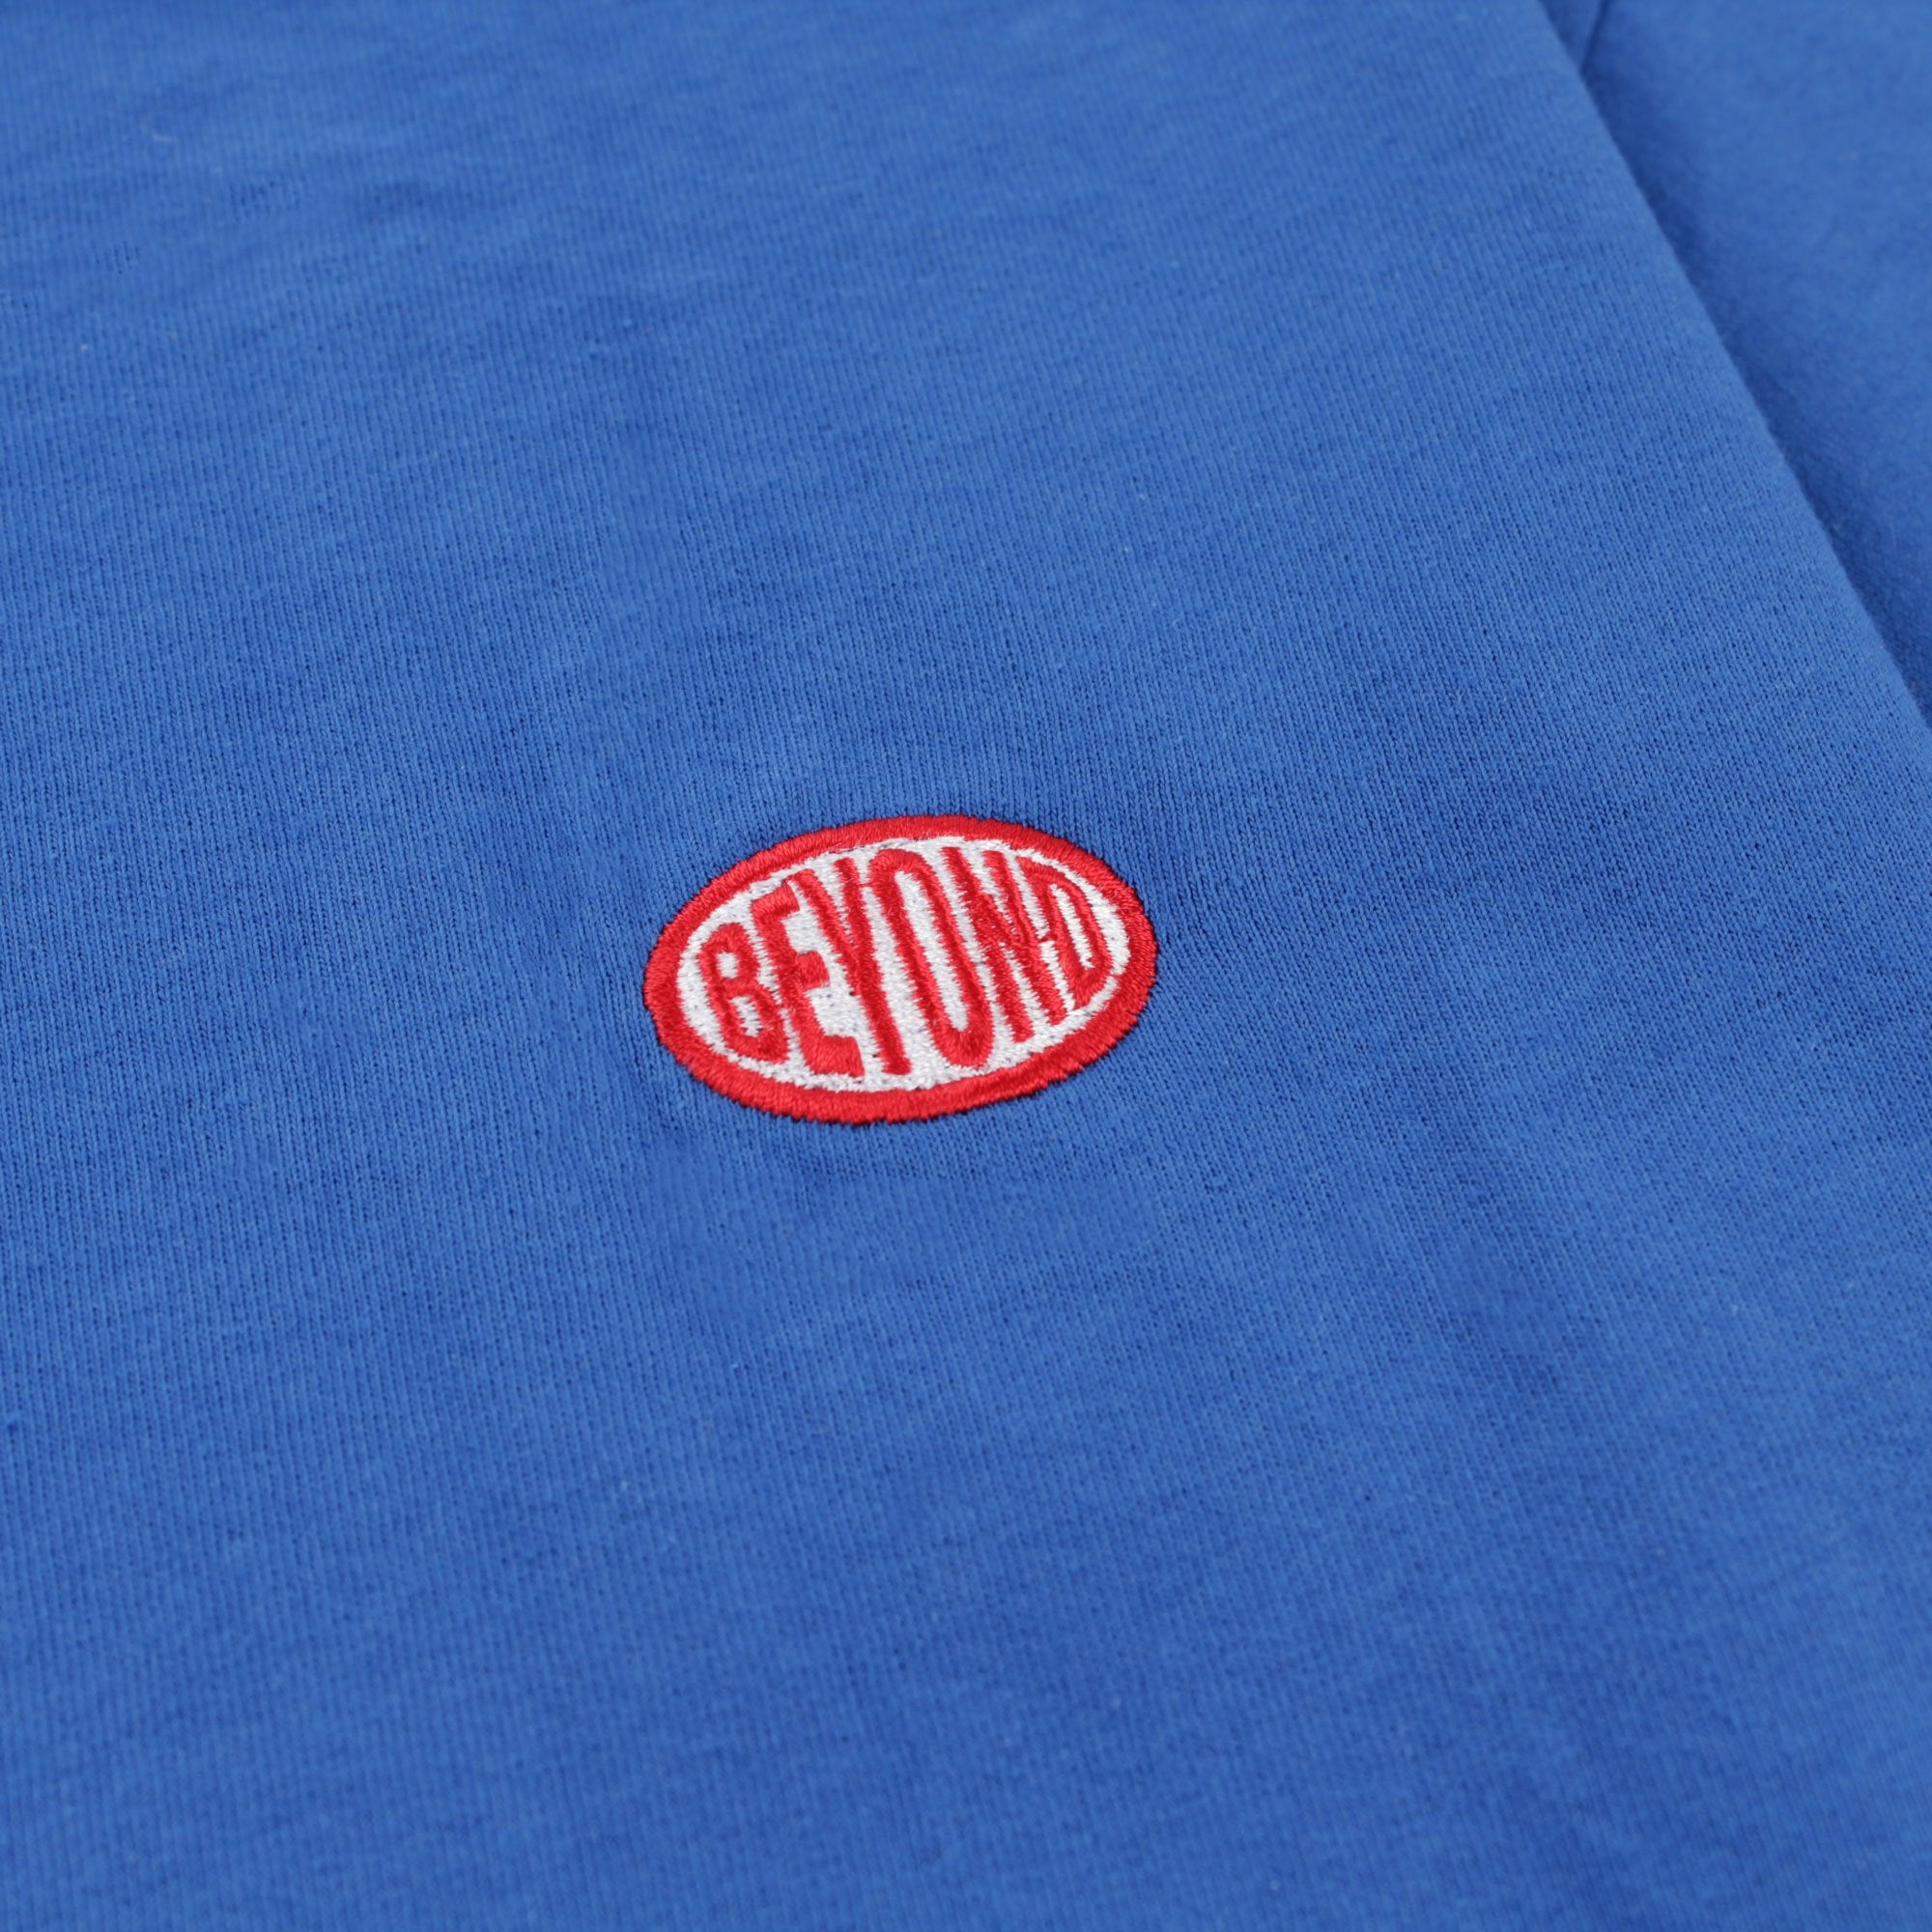 Beyond Bupont Tee Product Photo #2